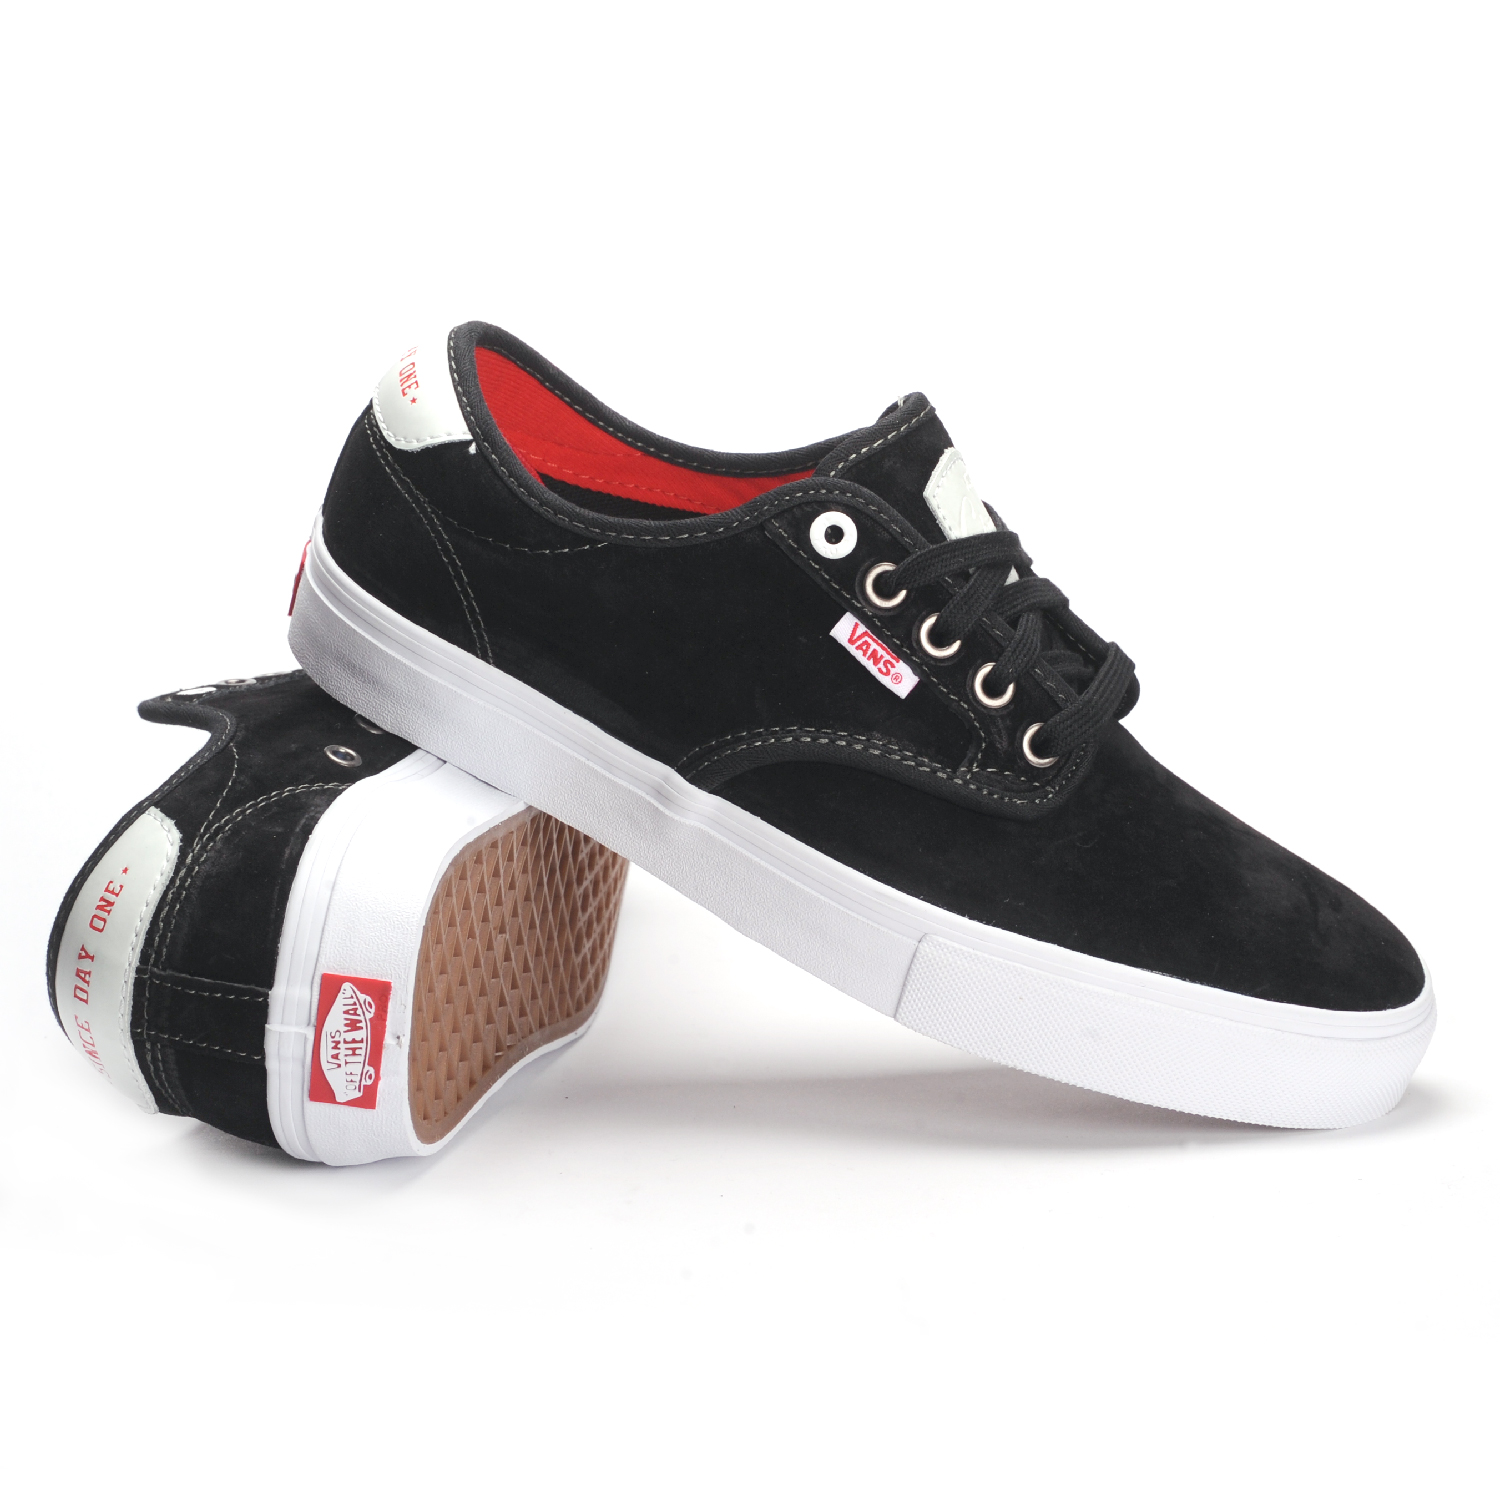 Vans Chima Ferguson Pro (Real Skateboards Black) Kid's Shoes